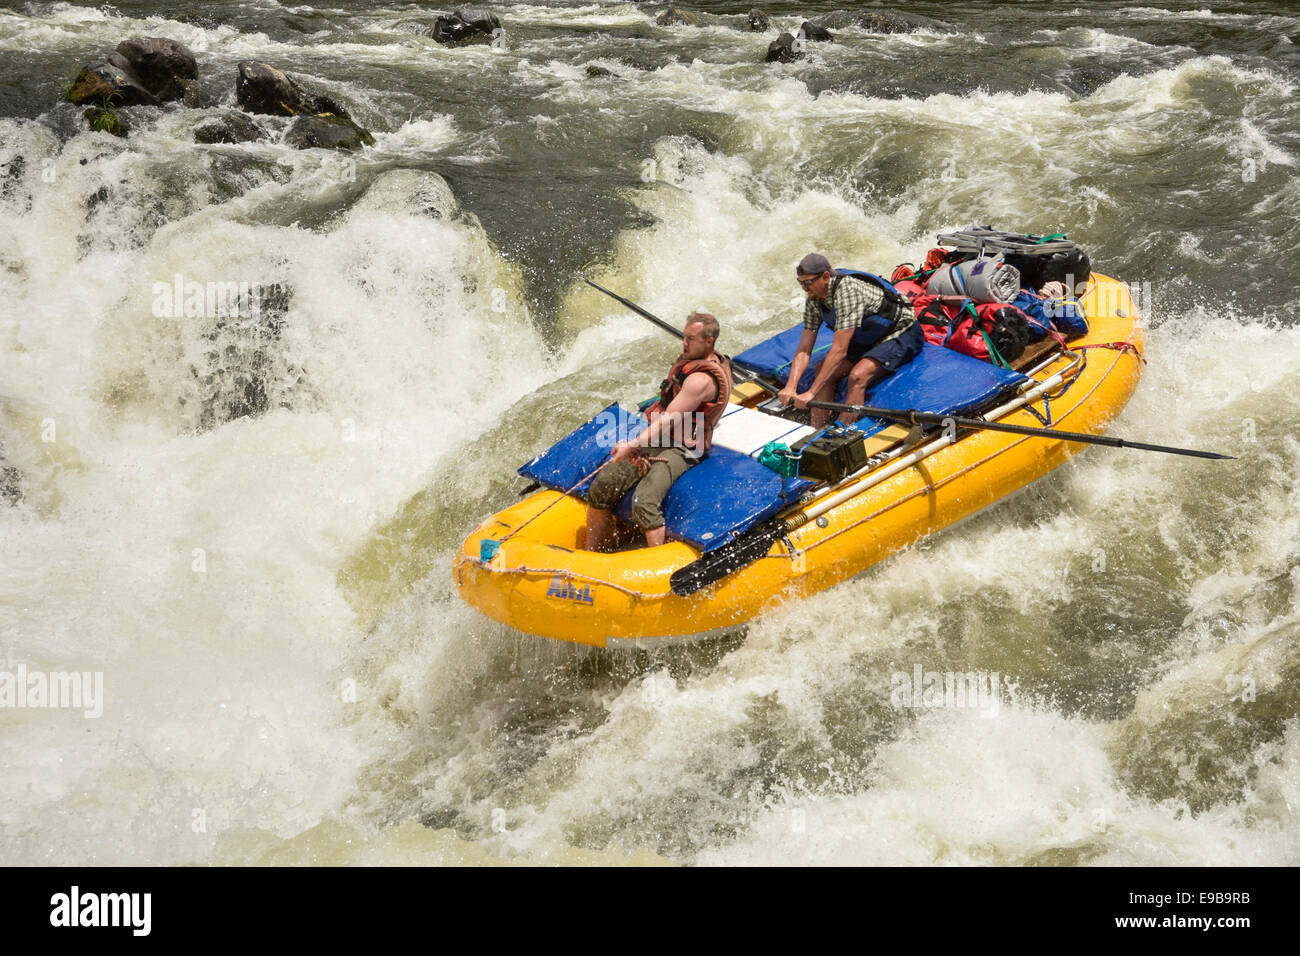 Whitewater rafting fun on the Wild & Scenic Rogue River in Oregon - Stock Image